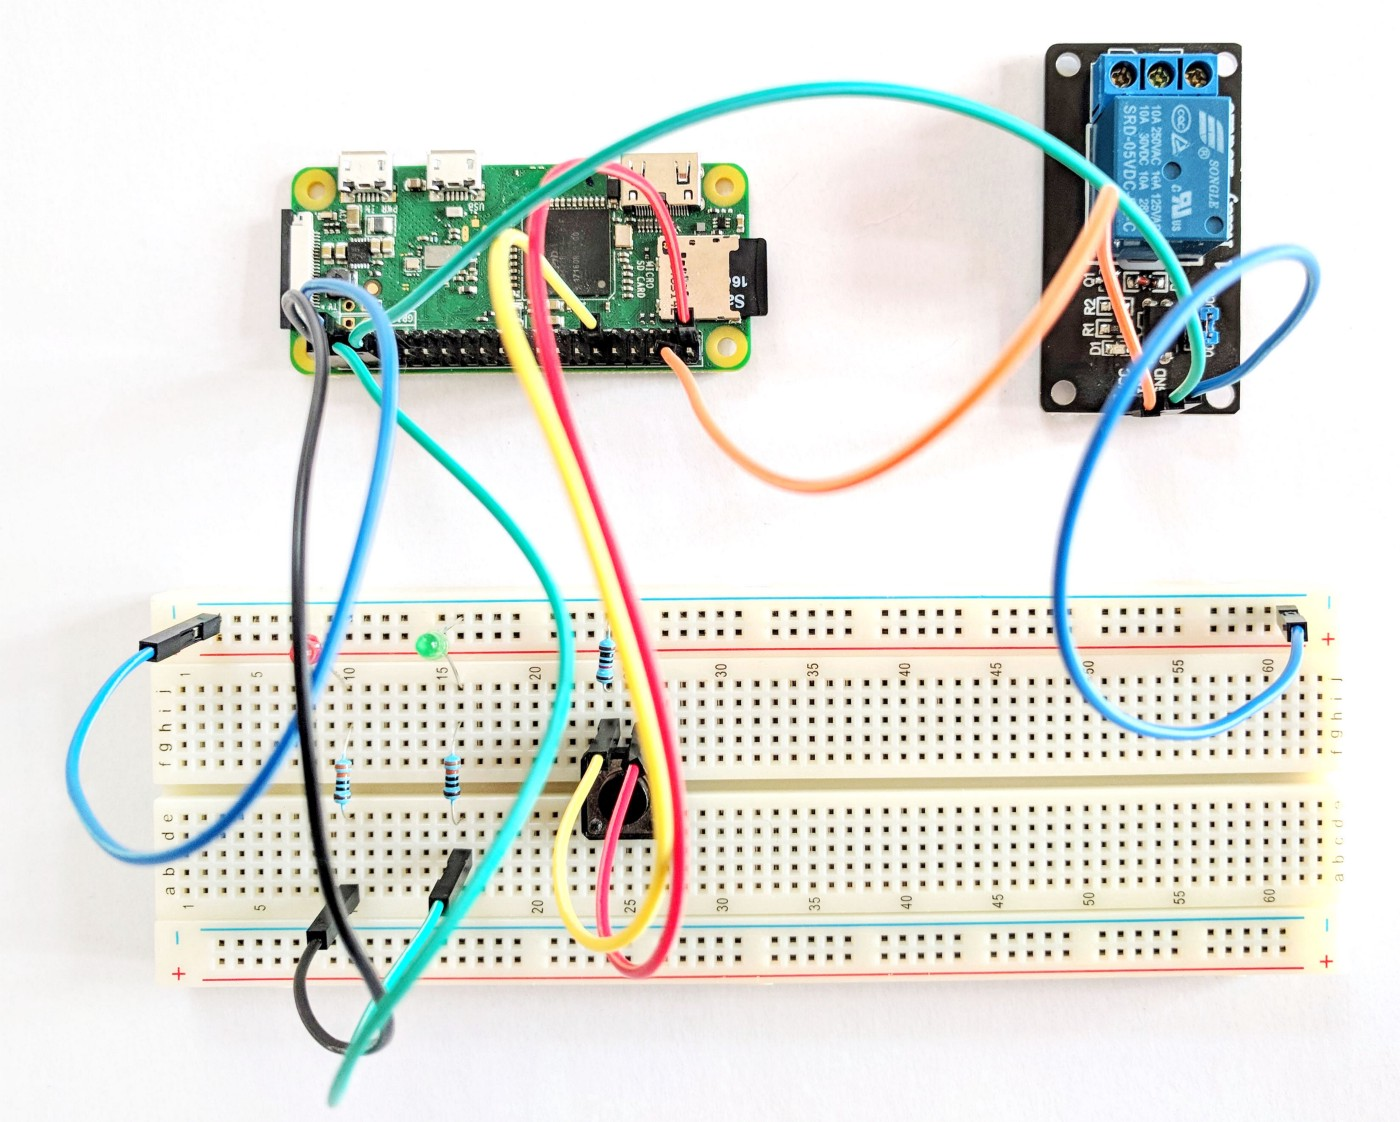 How to implement door unlocking system with Raspberry Pi, iPhone and